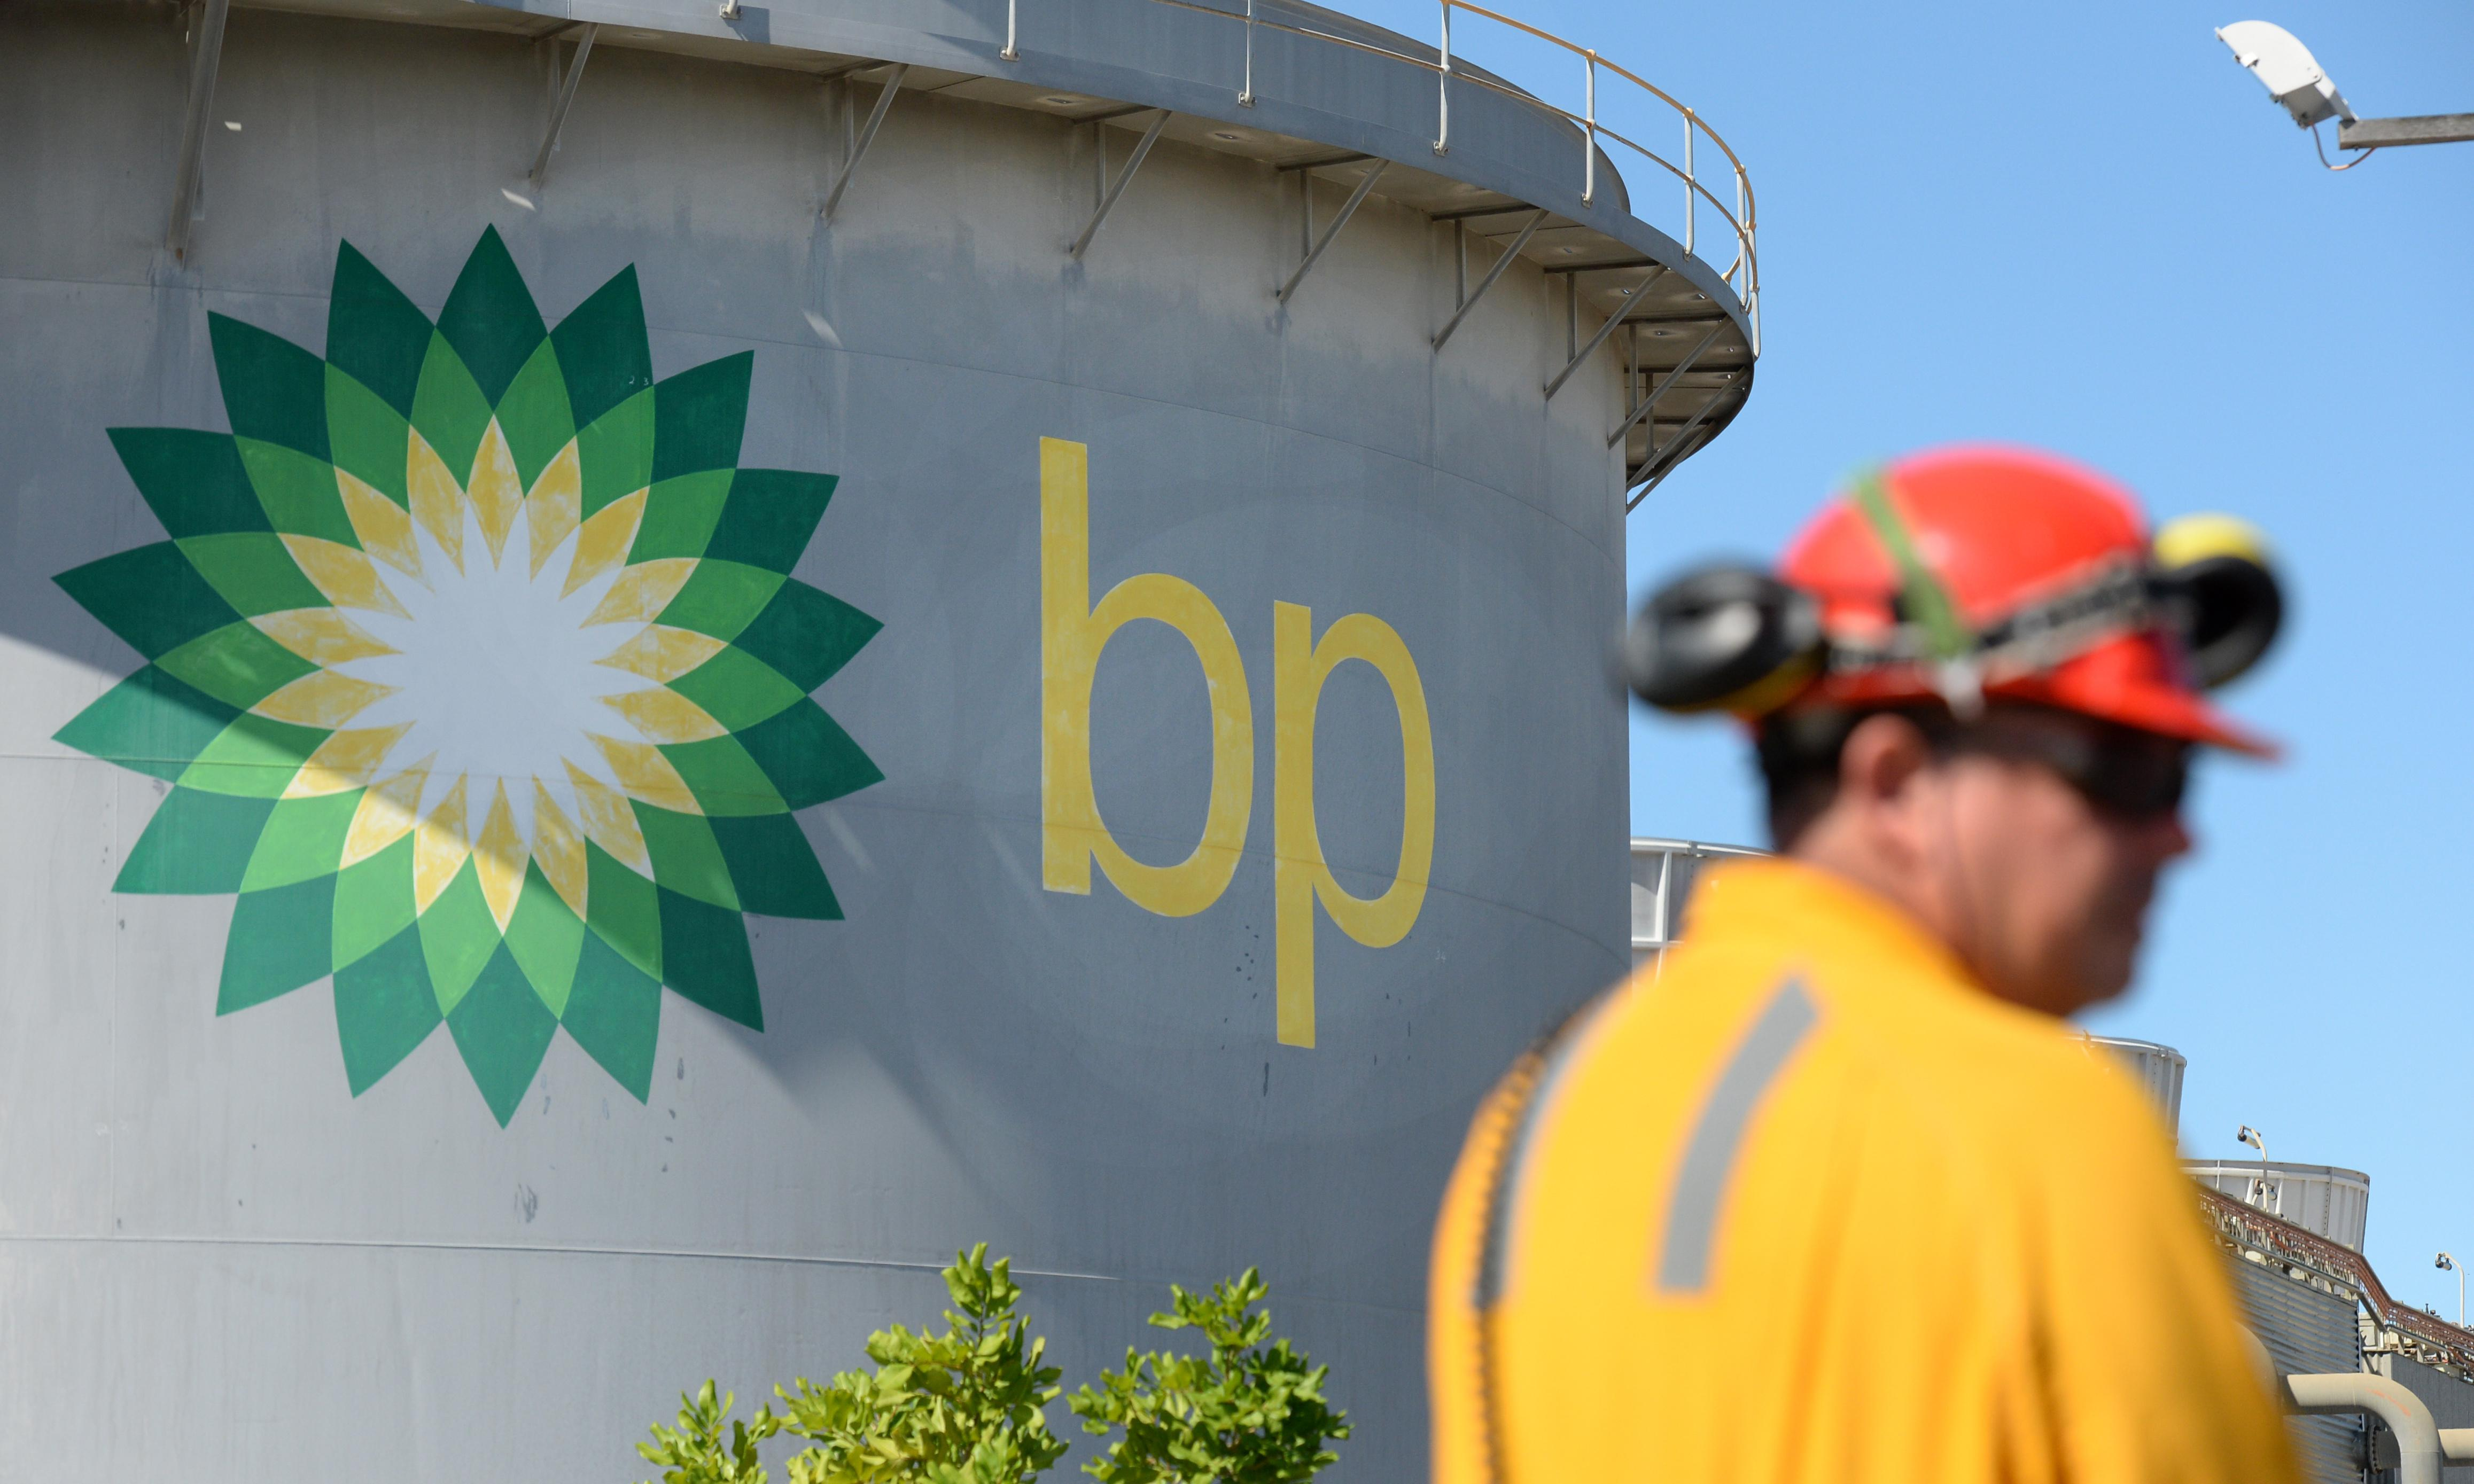 BP cuts ties with three US trade groups over climate policies